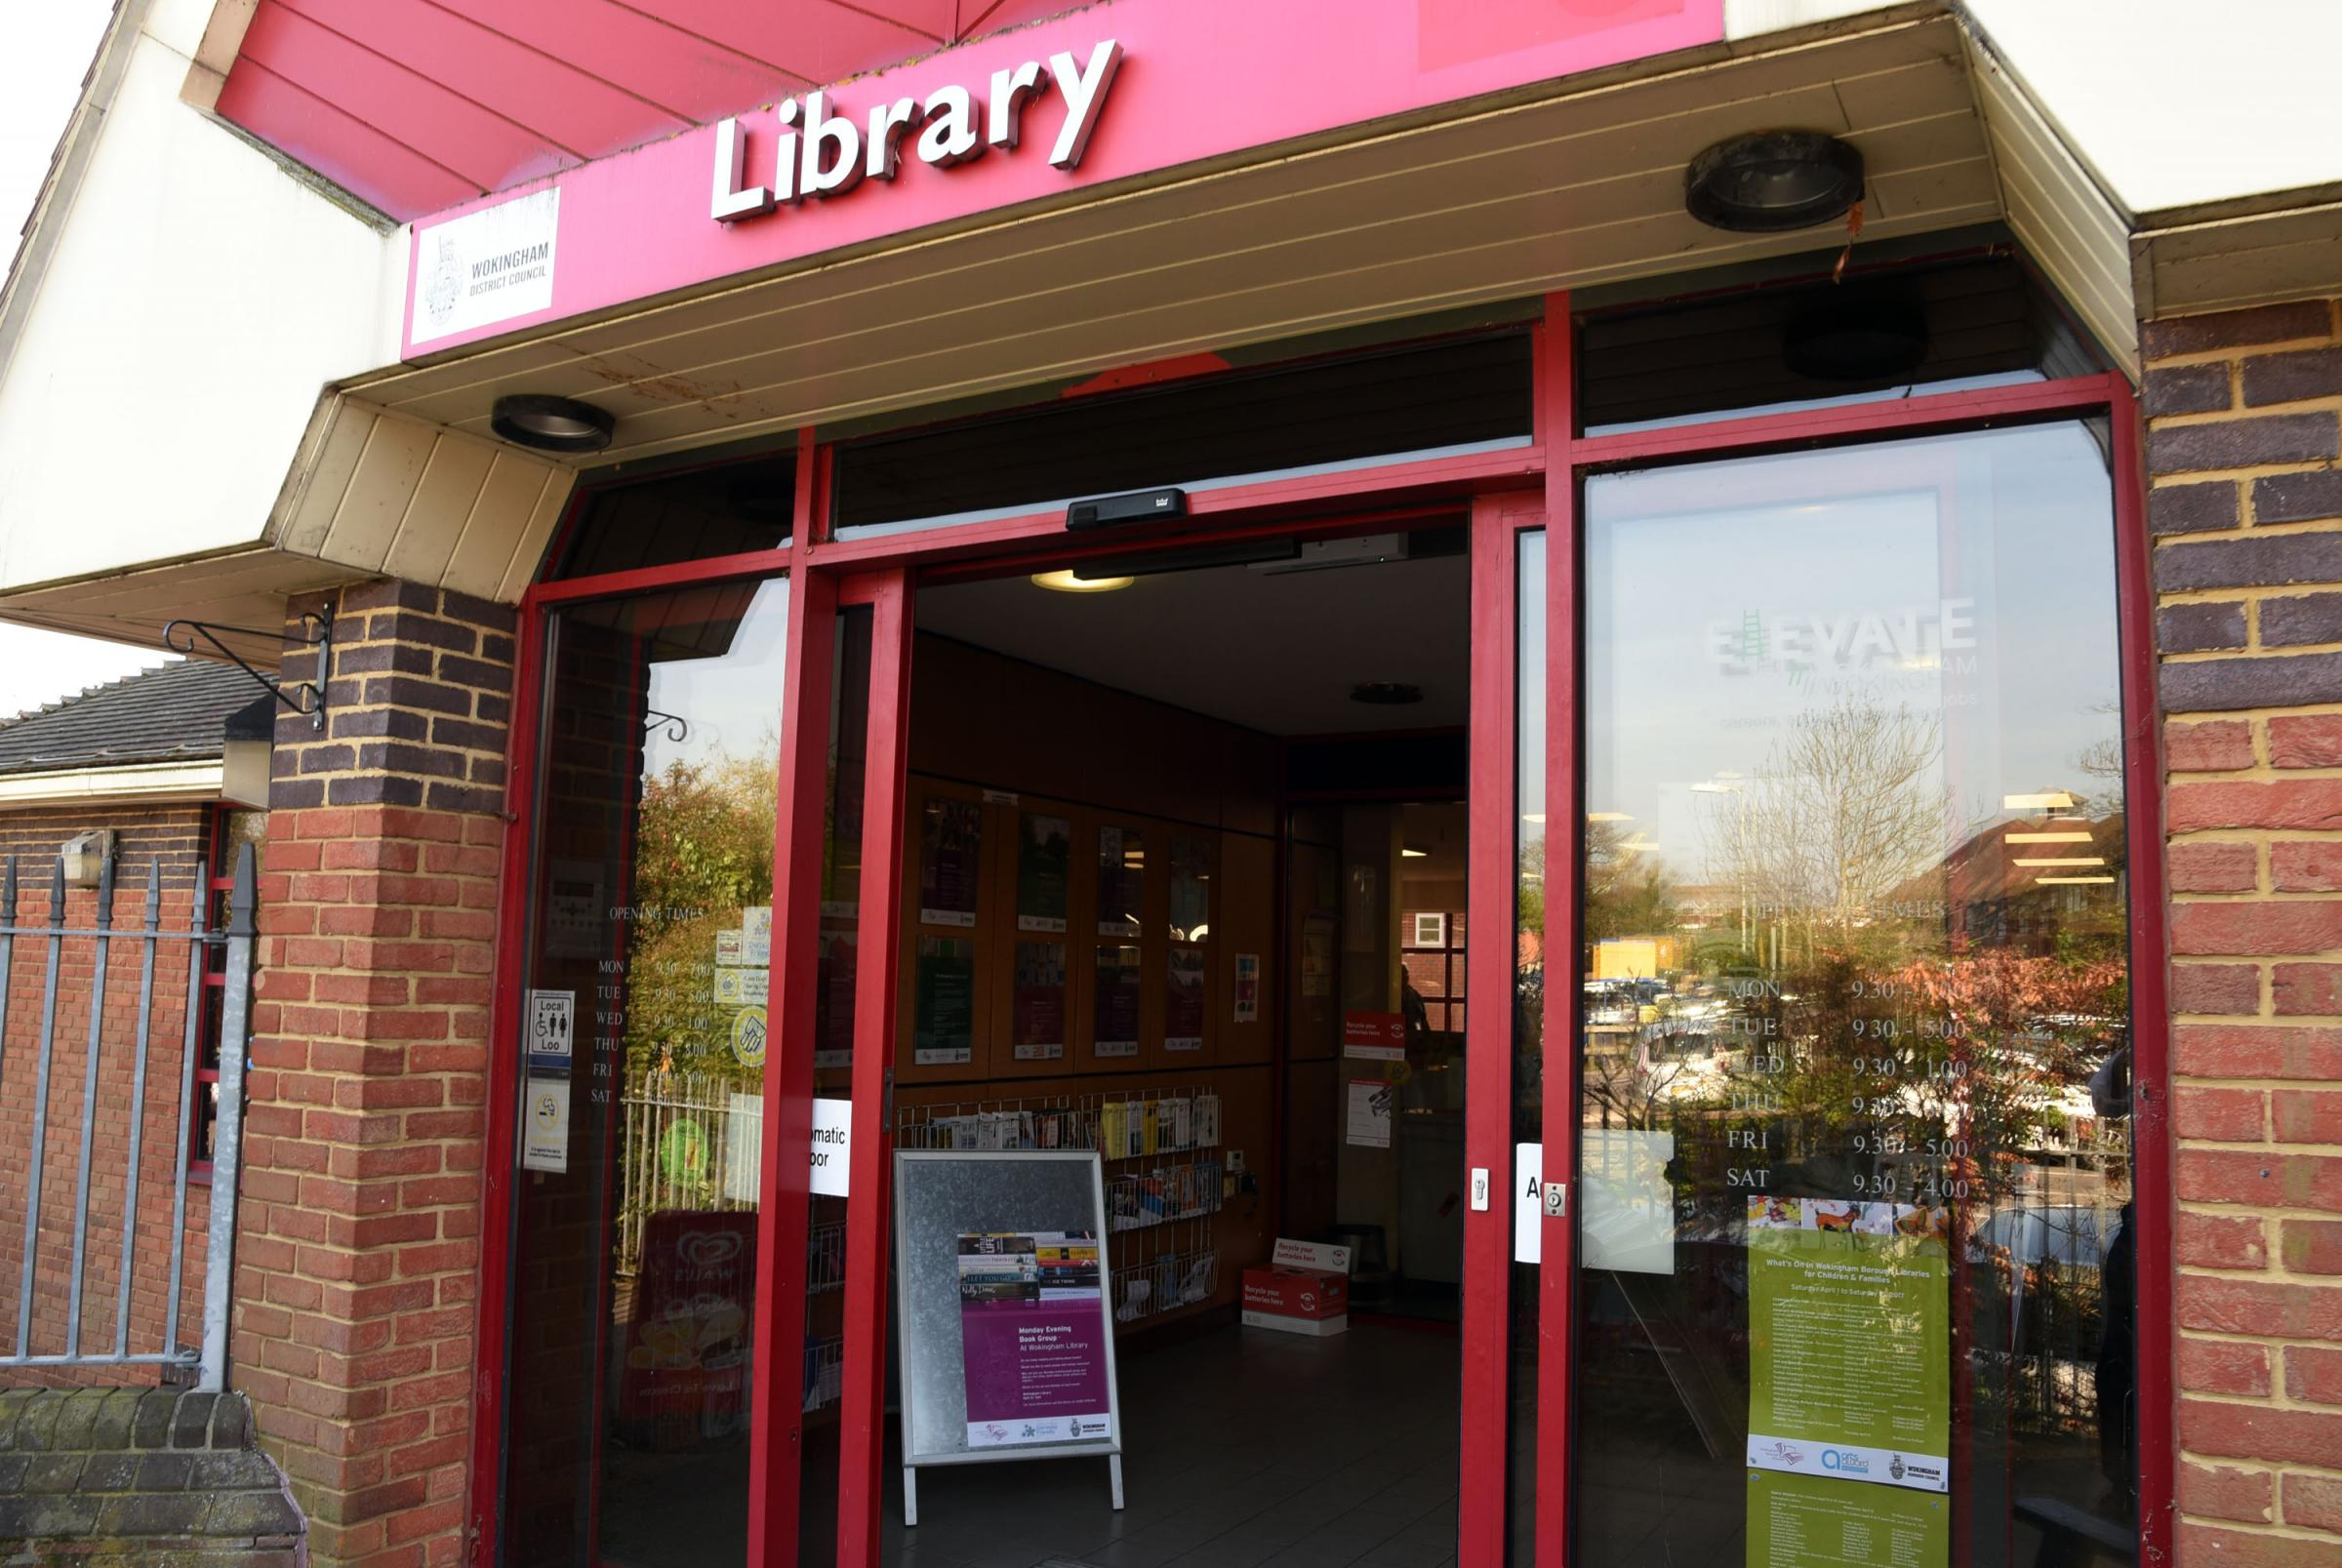 Town library October schedule revealed